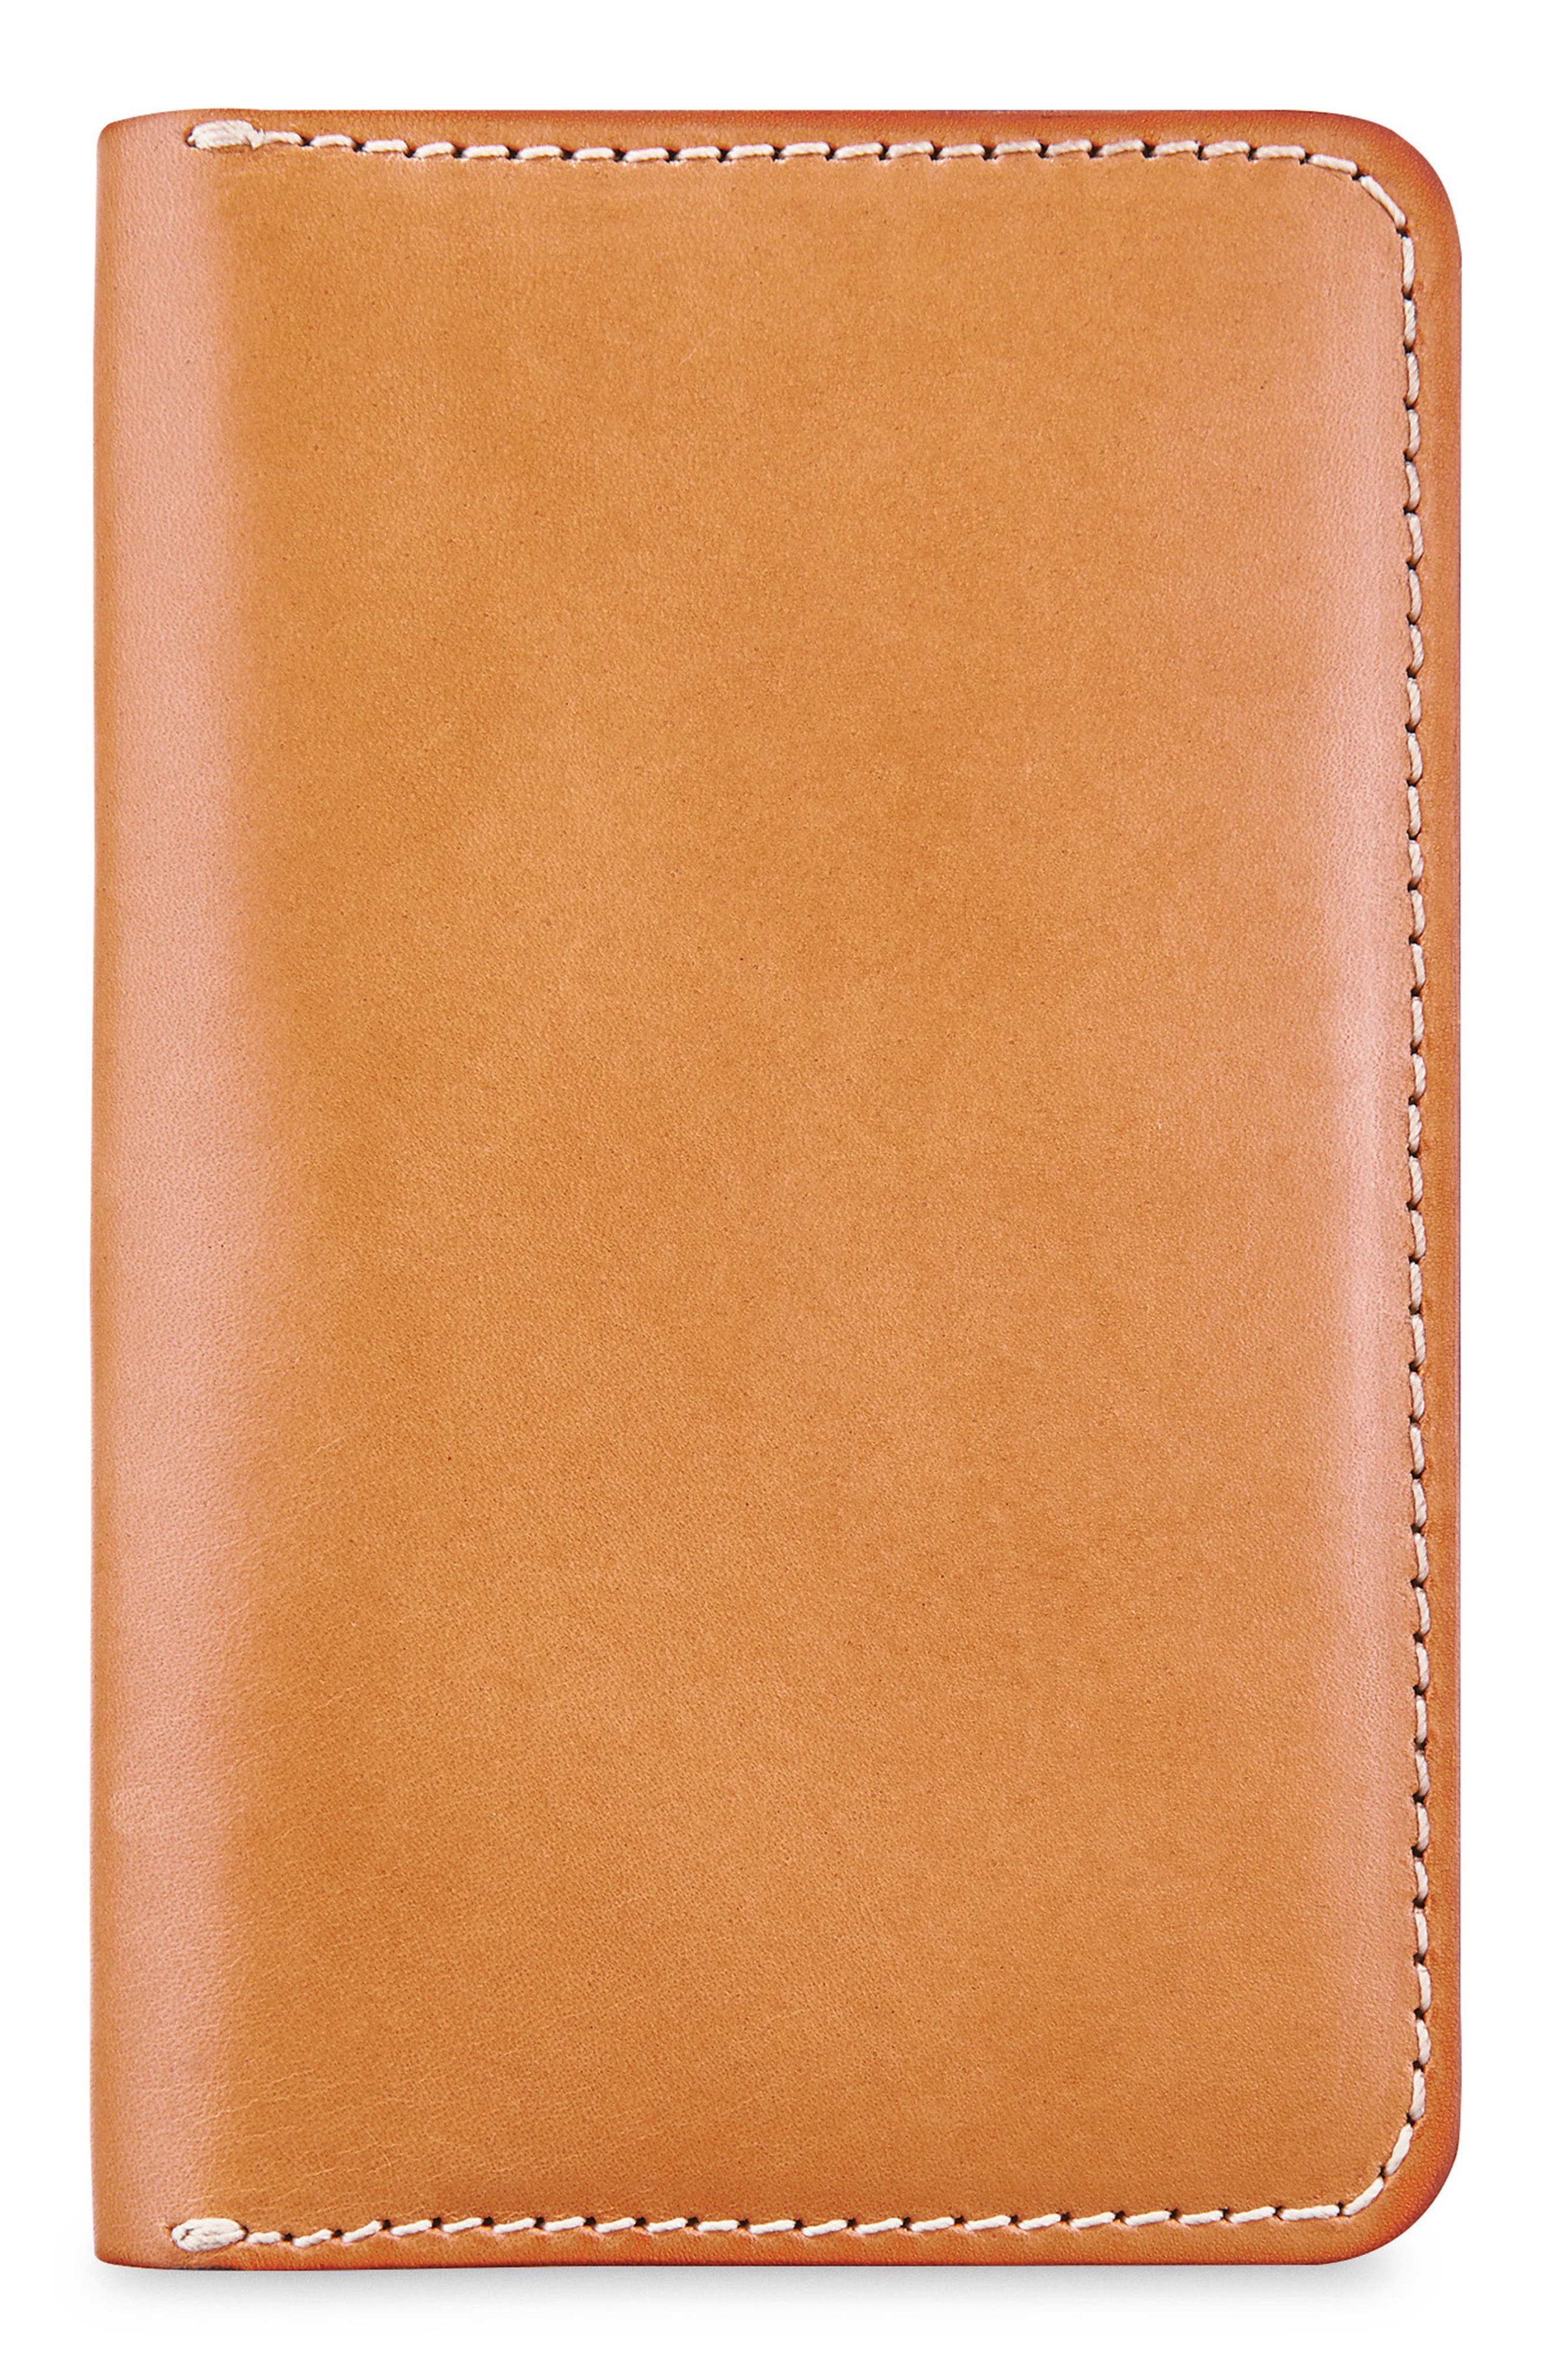 Leather Passport Wallet,                         Main,                         color, Tanned Vegetable